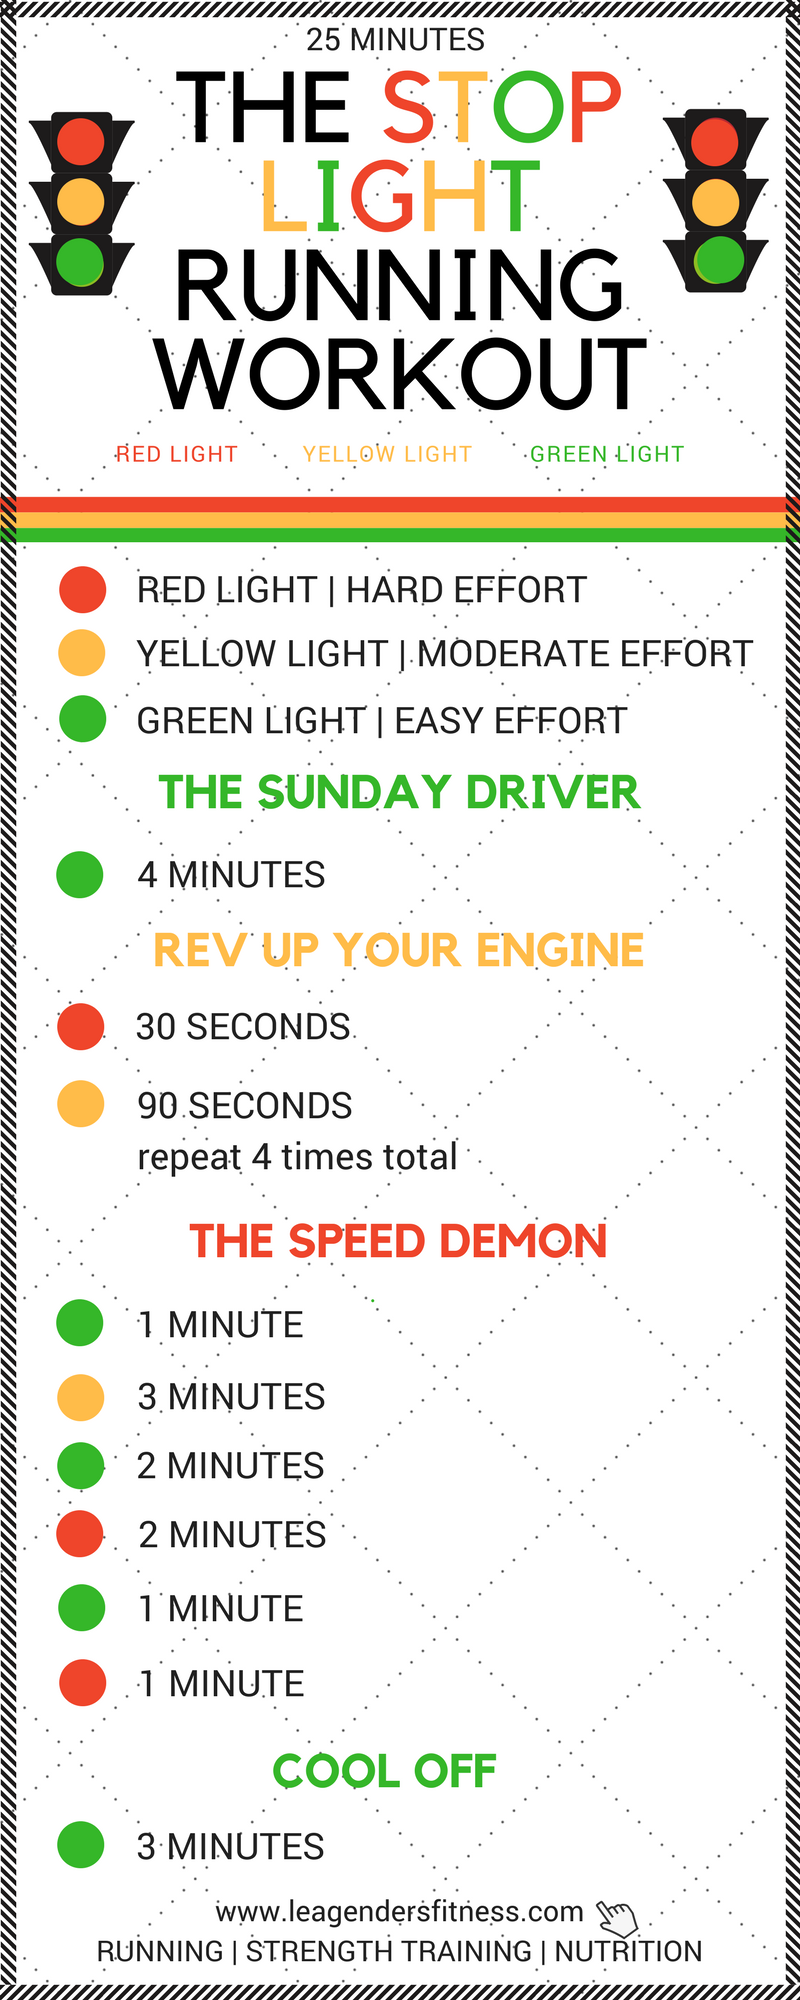 Download a printable PDF of the Stop Light Running Workout